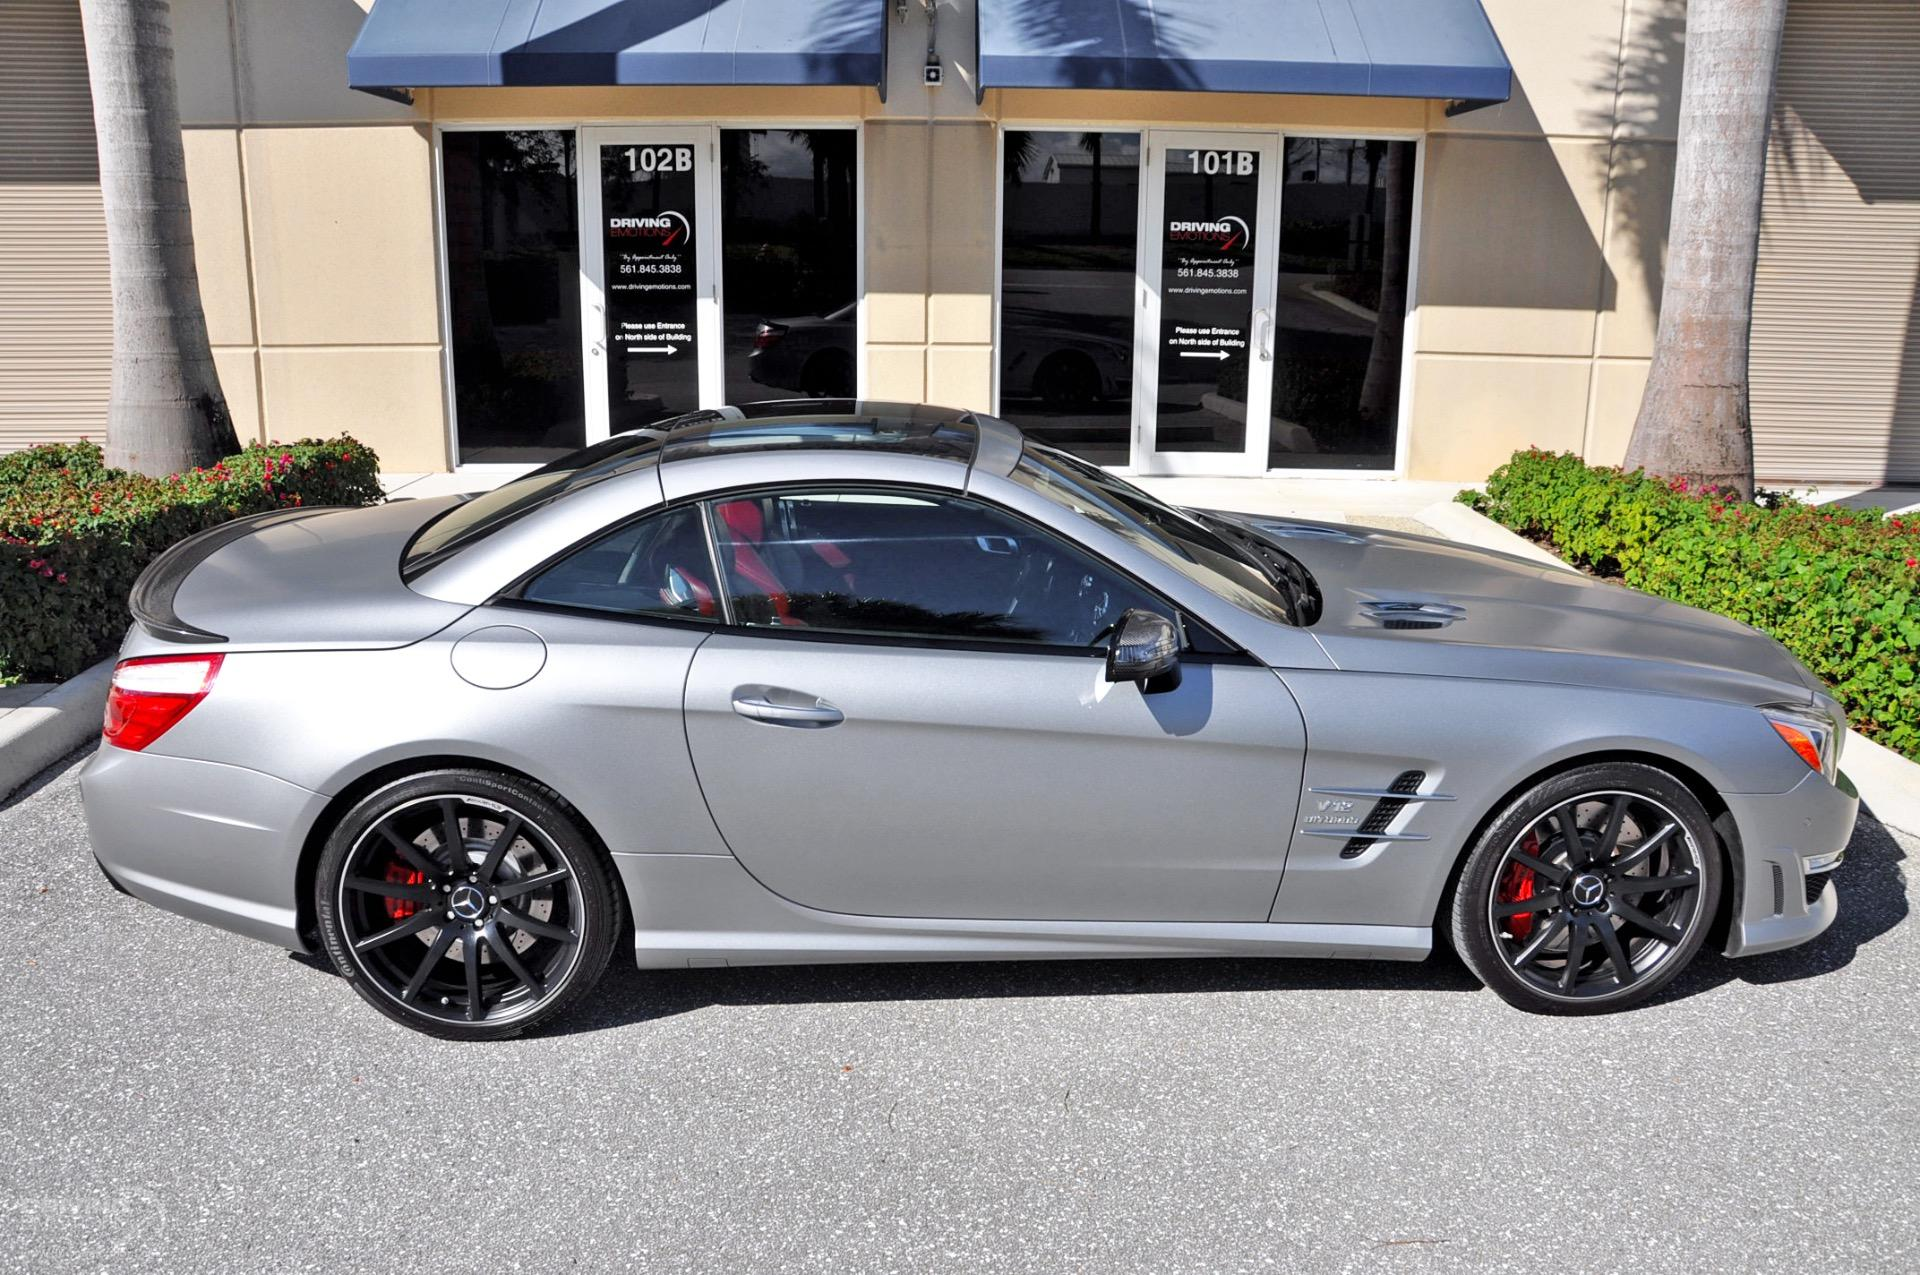 2013 mercedes benz sl65 amg sl 65 amg stock 5985 for for 2013 mercedes benz sl65 amg for sale